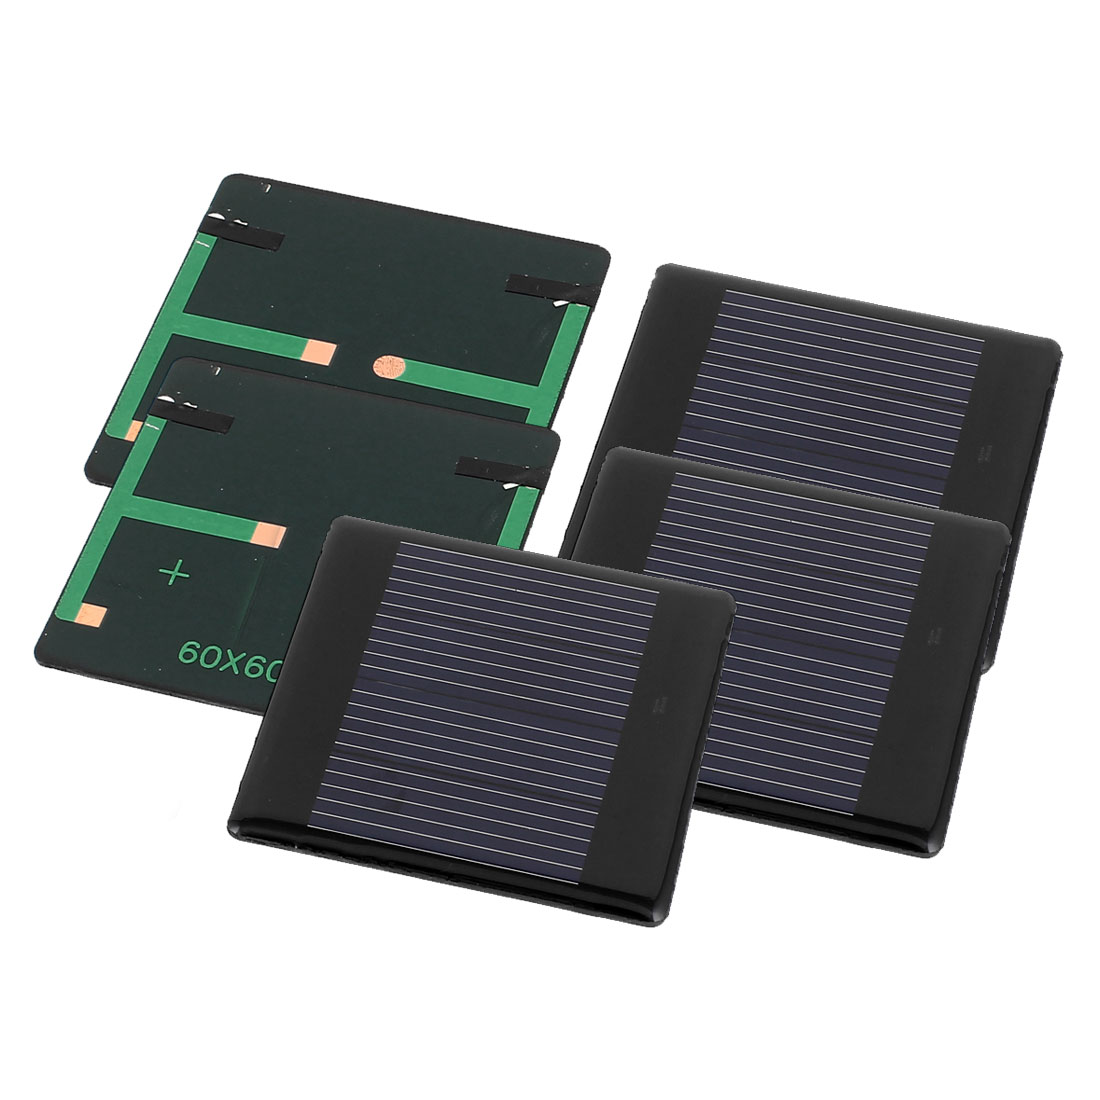 5 Pcs 2V 0.18W DIY Polycrystallinesilicon Solar Panel Power Cell Battery Charger 60mm x 60mm